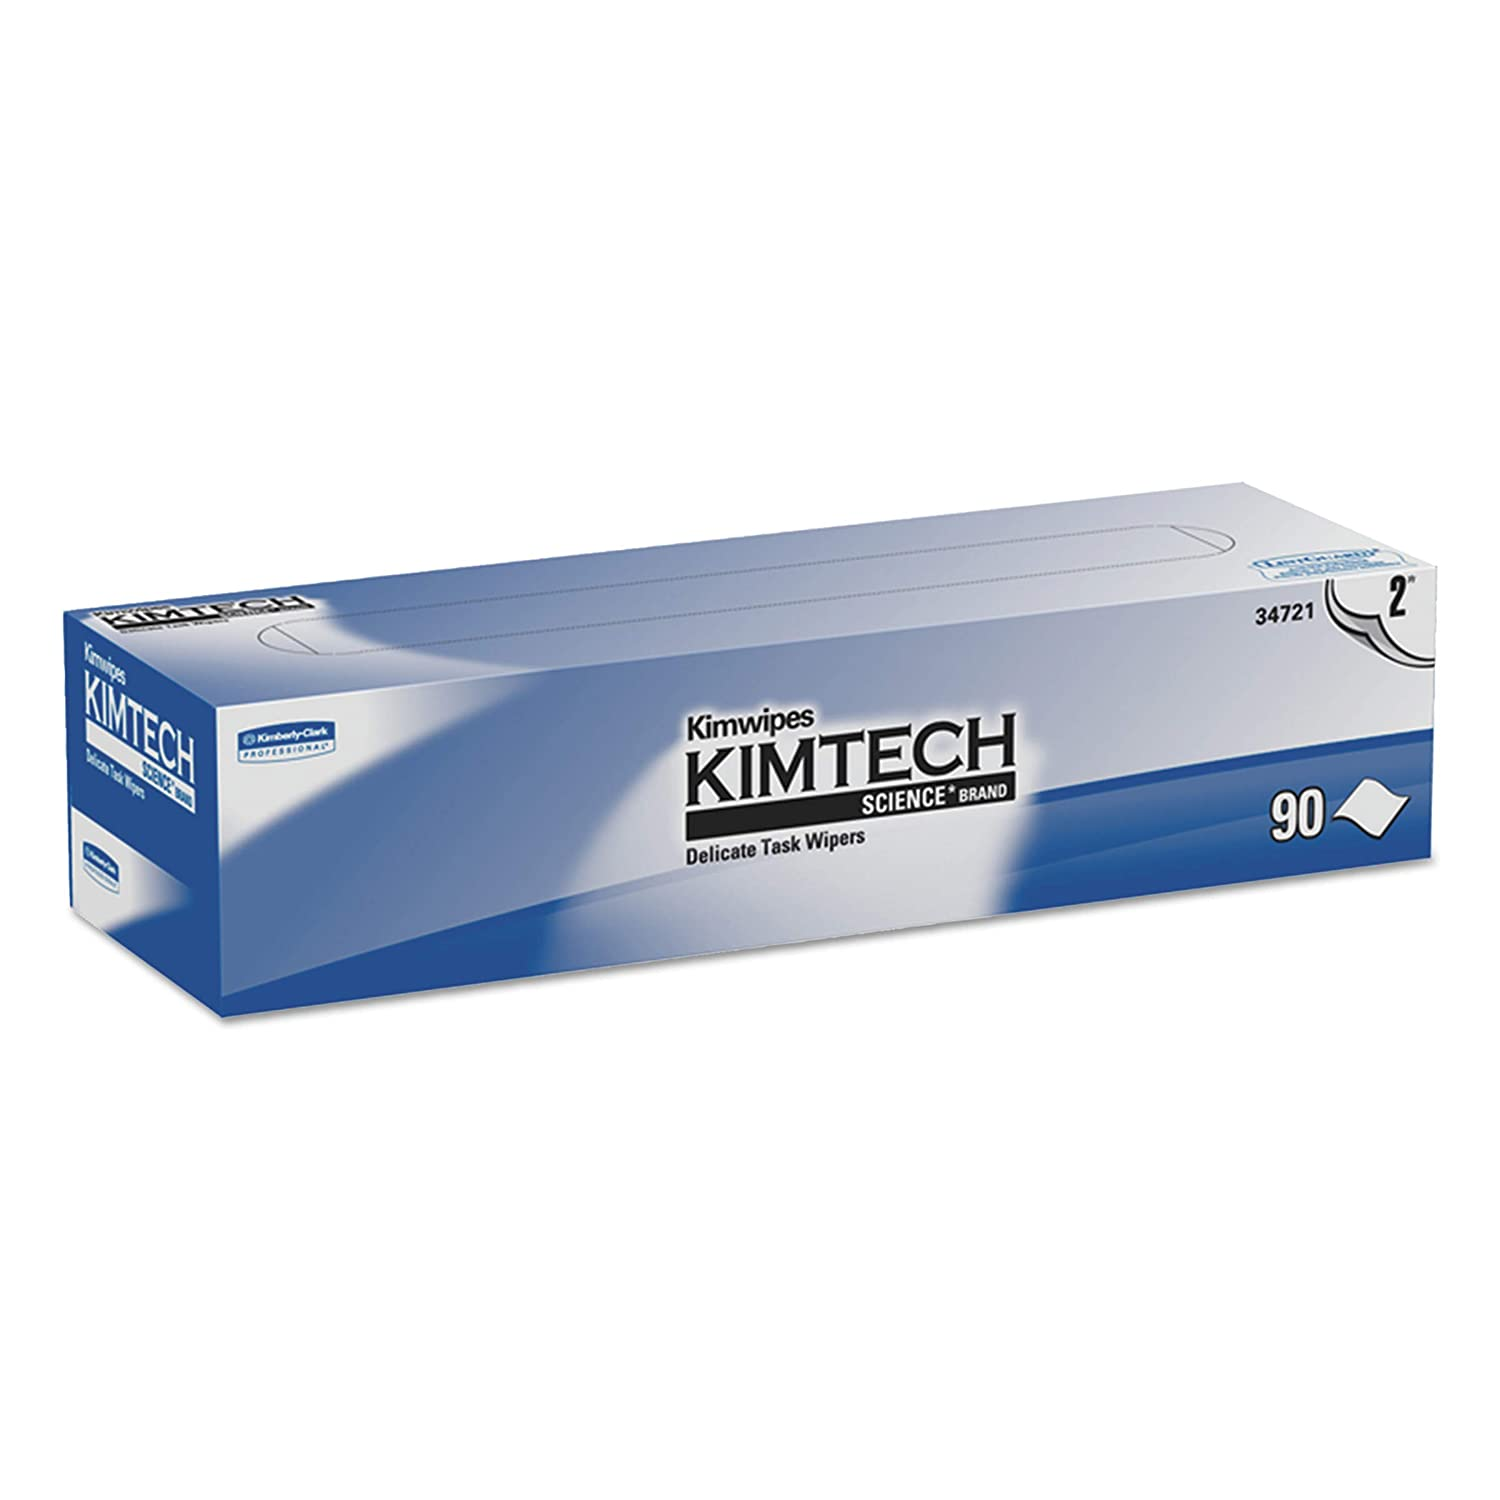 Kimtech 34721 Kimwipes Delicate Task Wipers 2 Ply 14 7 10 x 16 3 5 90 per Box Case of 15 Boxes